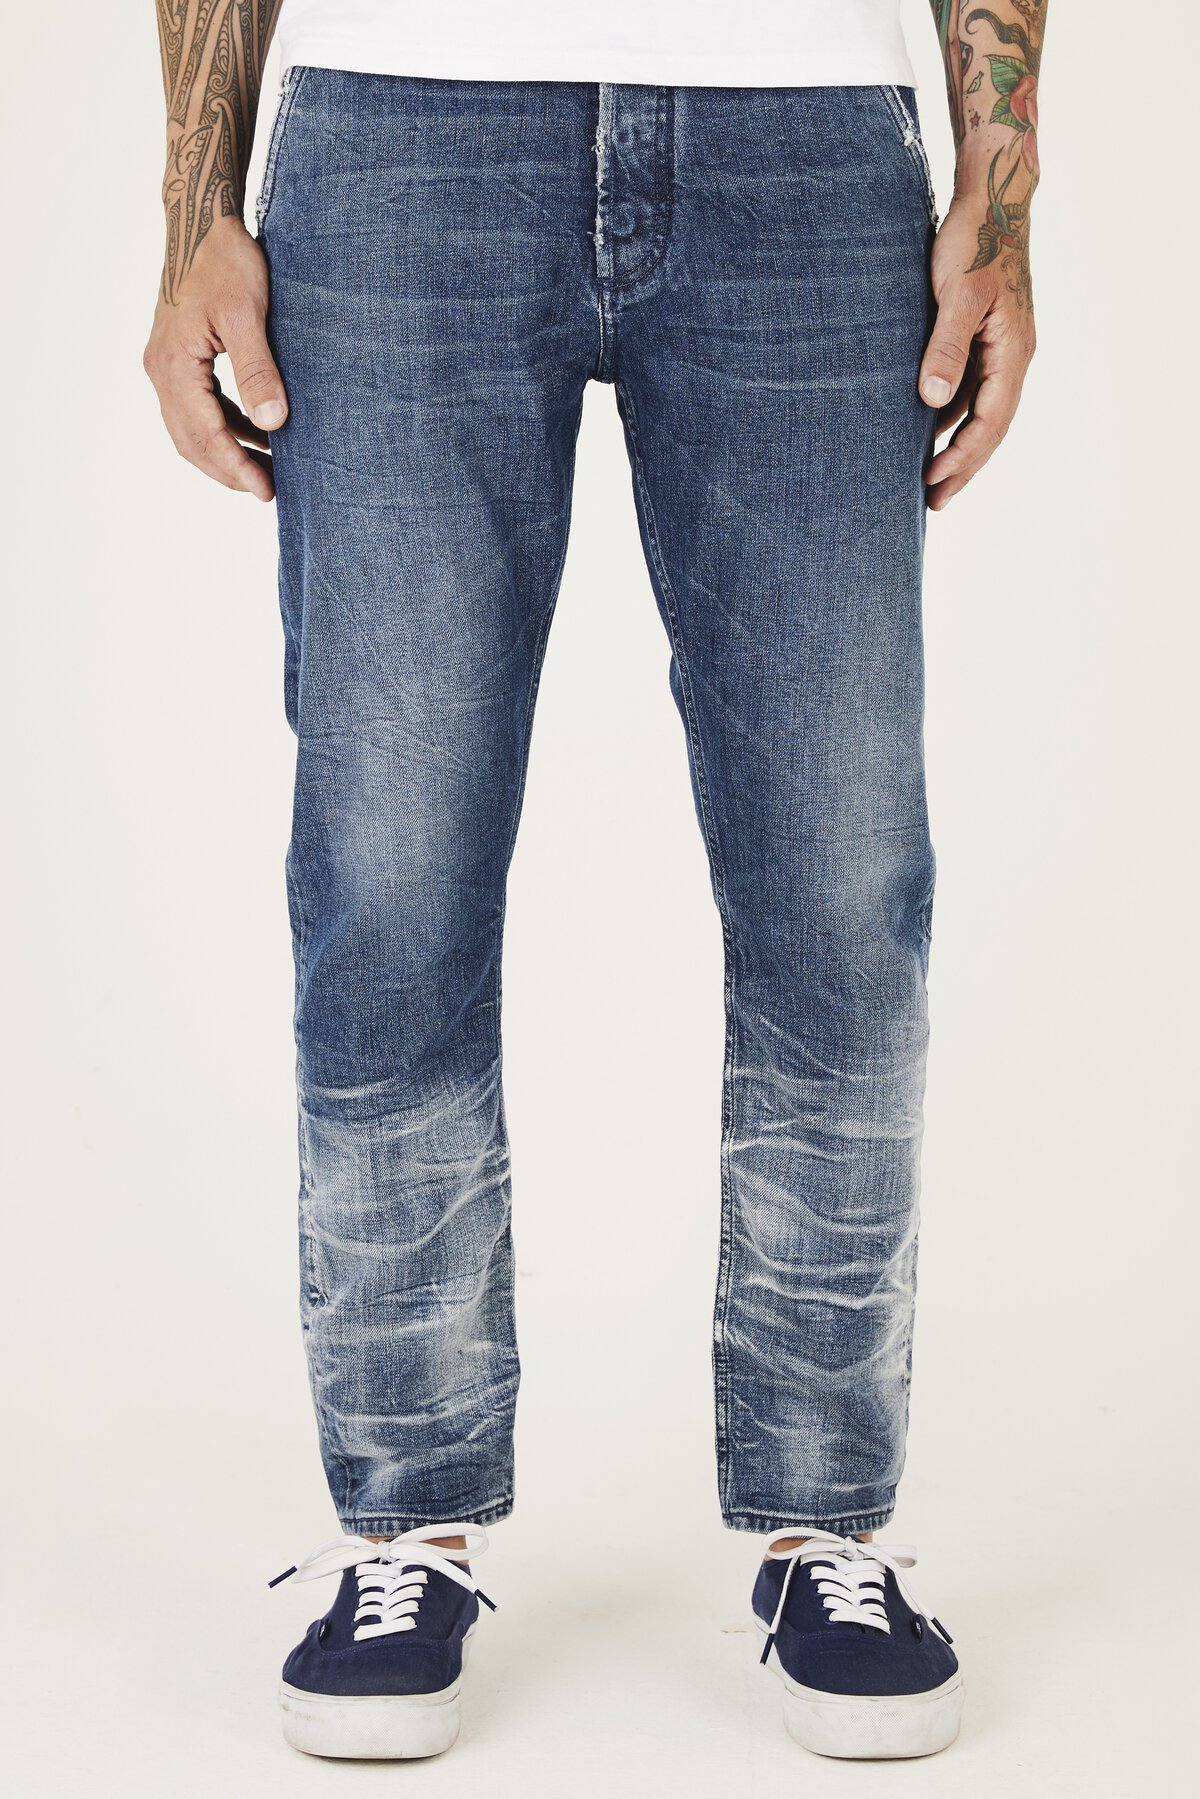 Osaka - Carrot Fit Jeans - Front